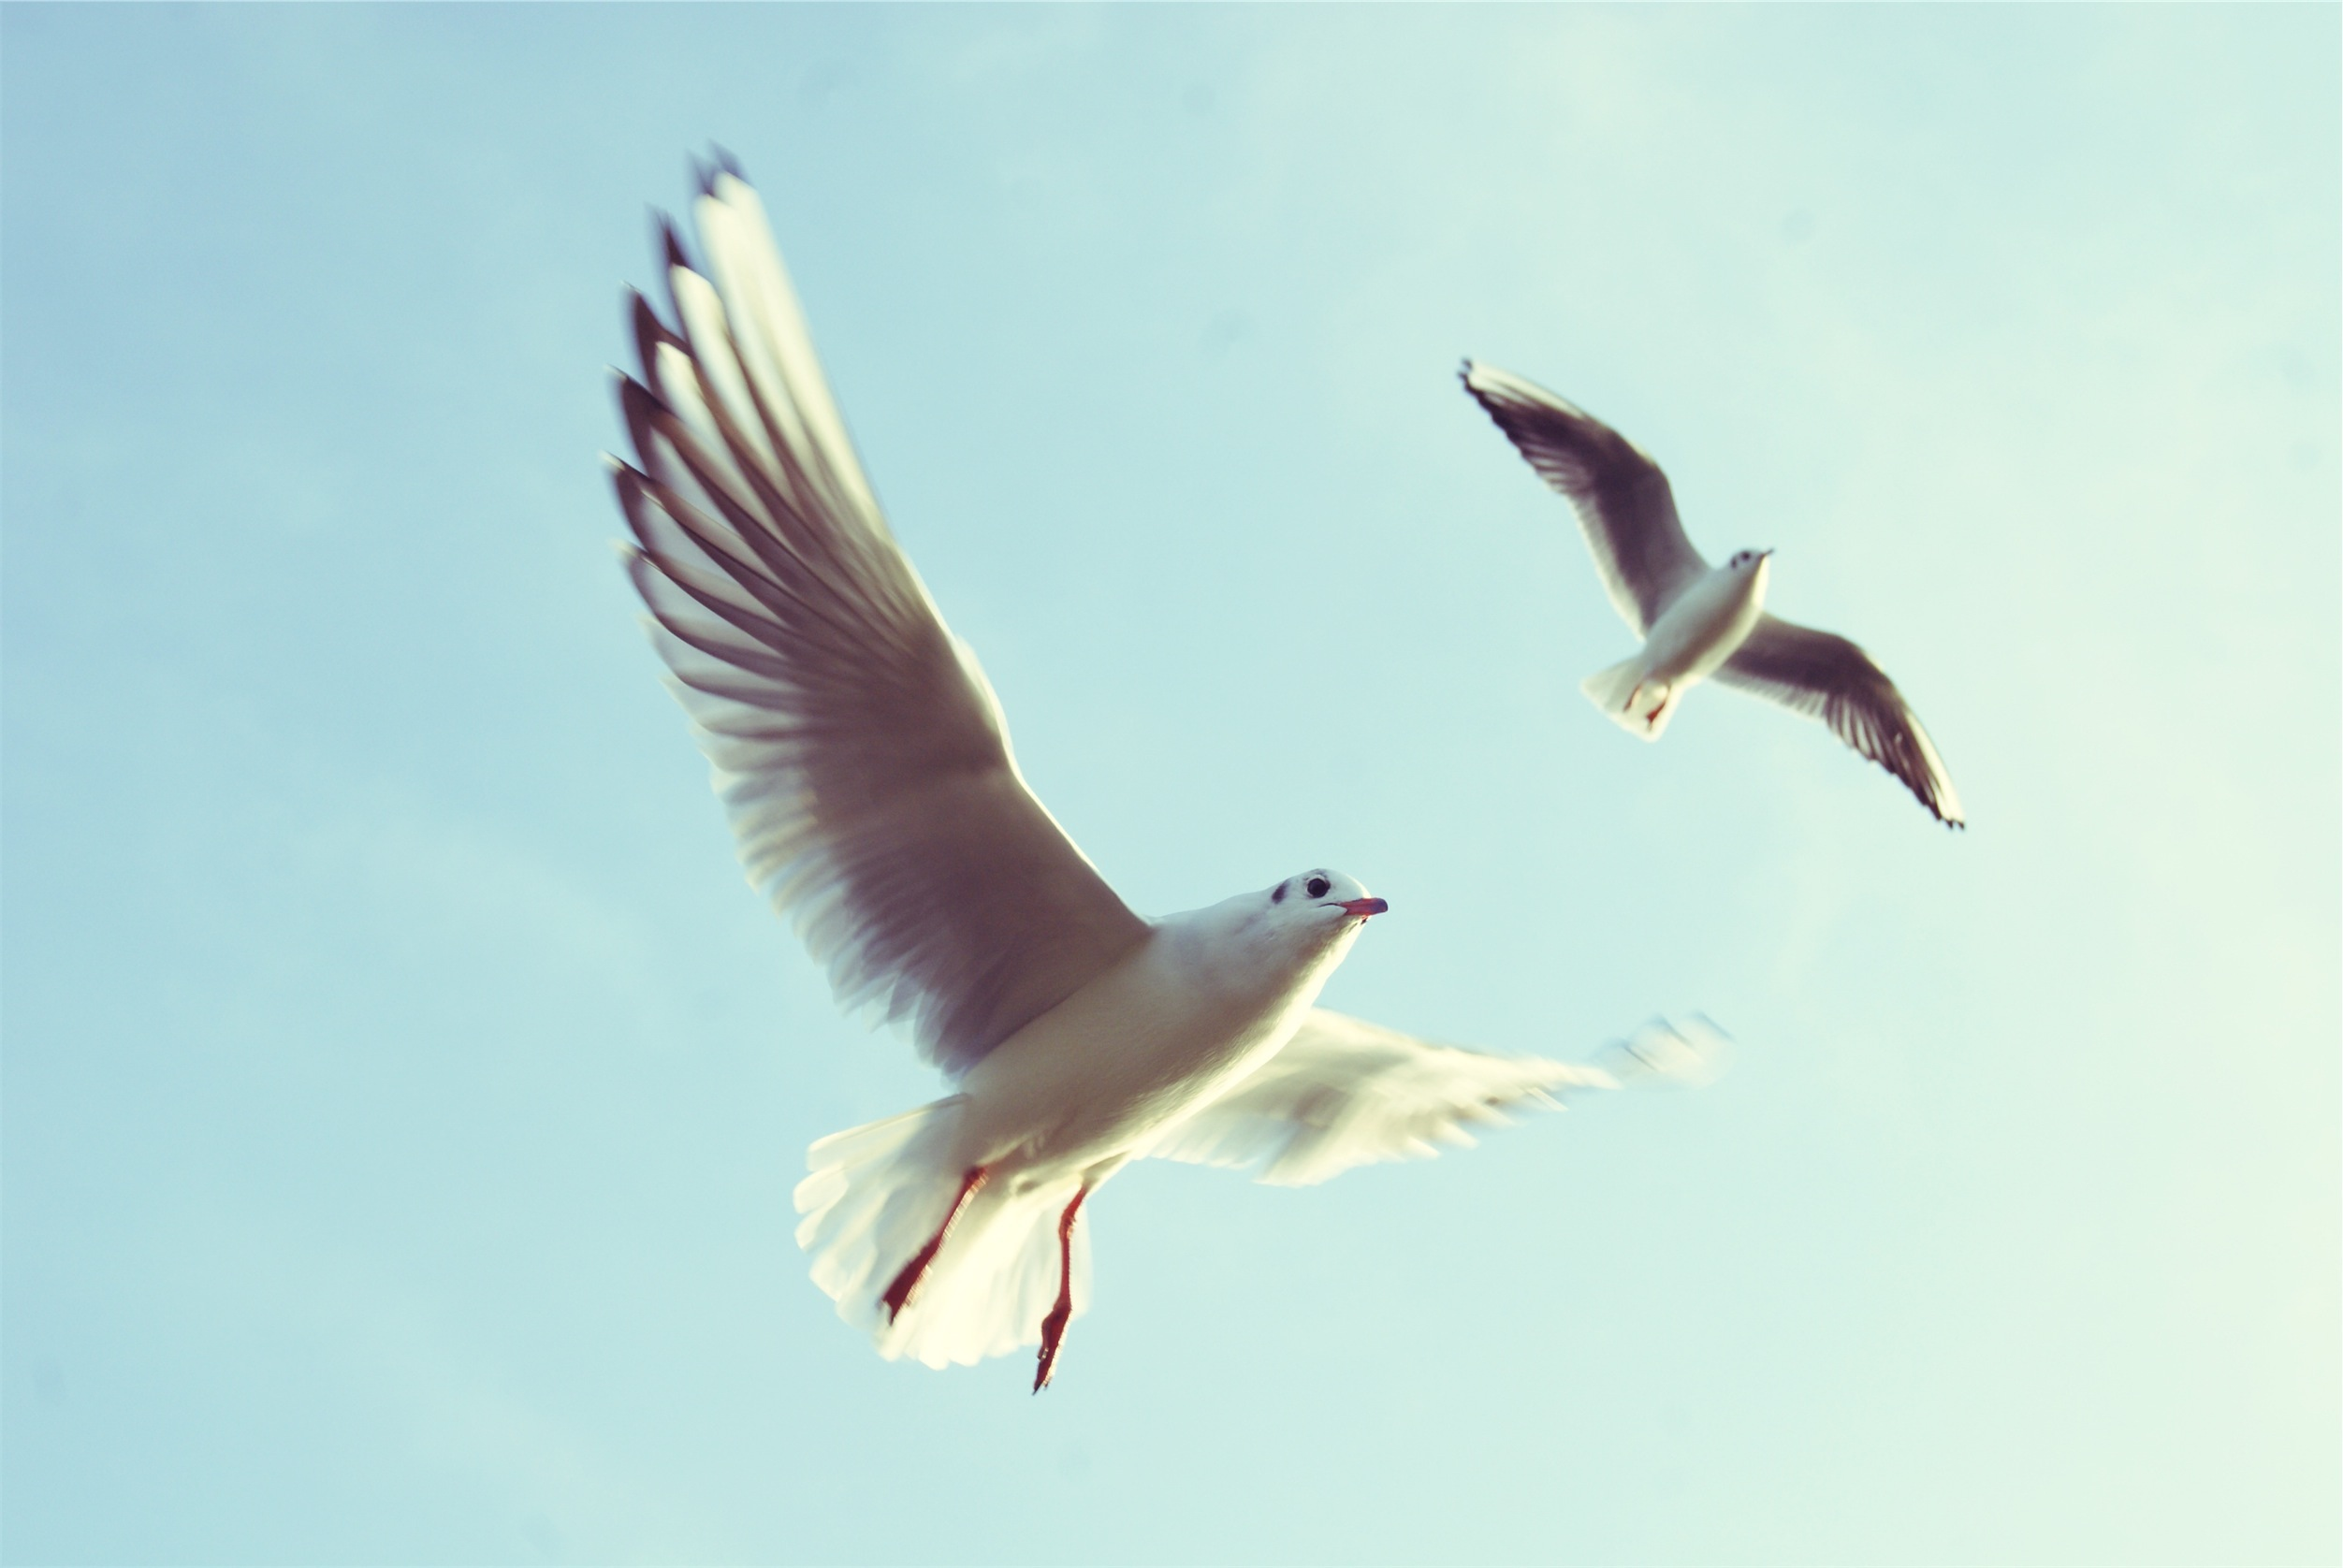 Gaviotas, flying bird, flying, feathers, sea